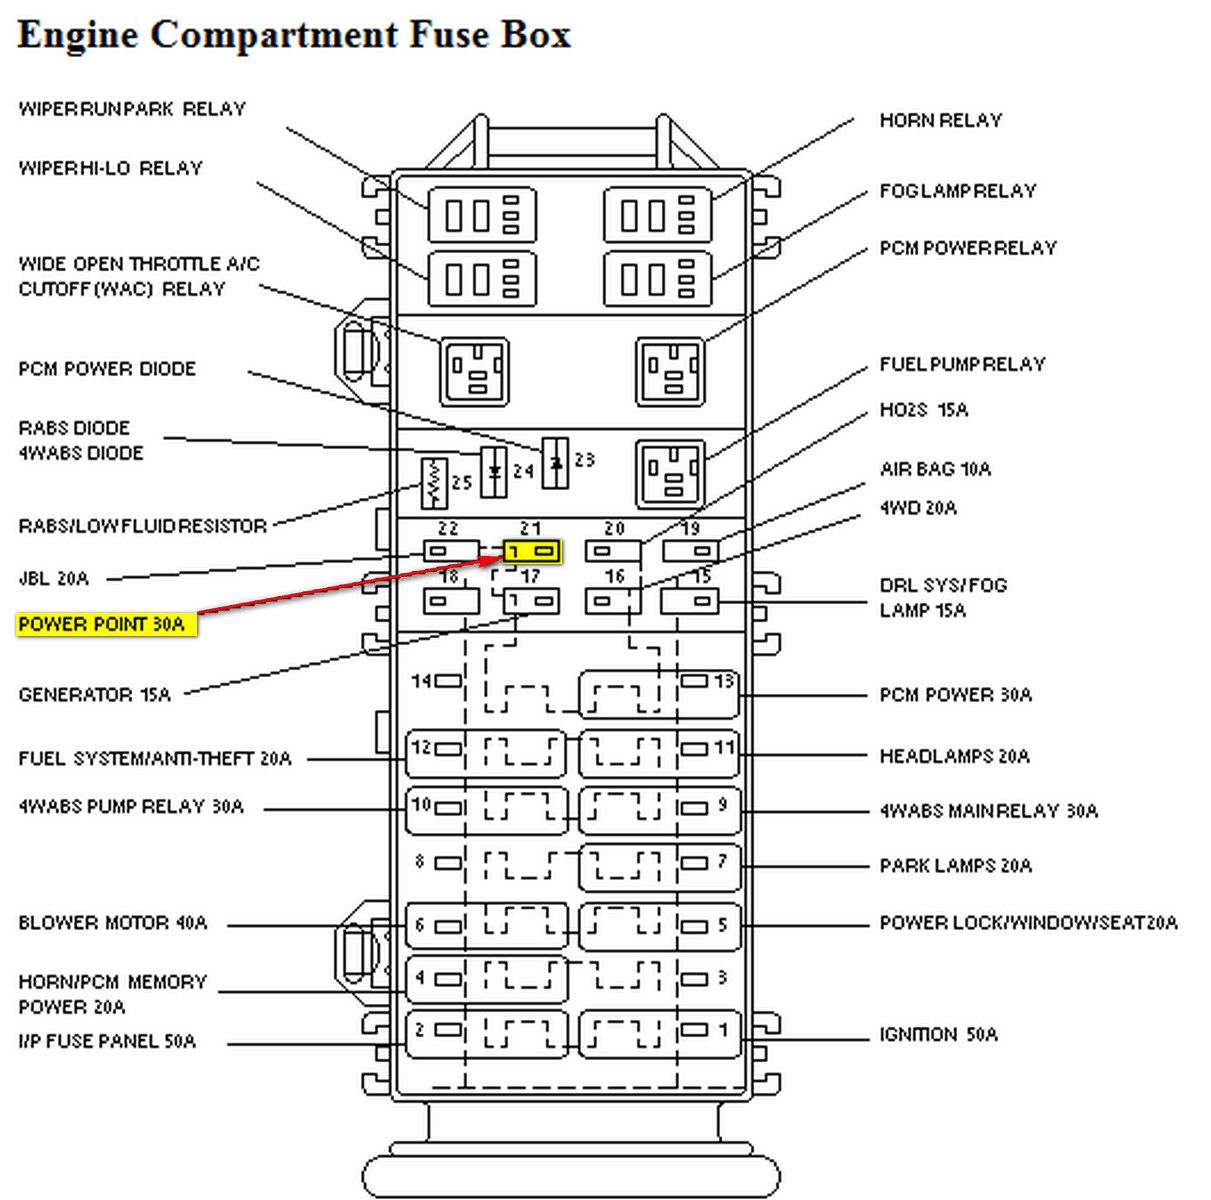 8a55967da7ae1bd251b795845886bd24 96 explorer fuse panel schematic ford explorer 4x4 hello, 1996 2010 ford explorer fuse box diagram at bayanpartner.co